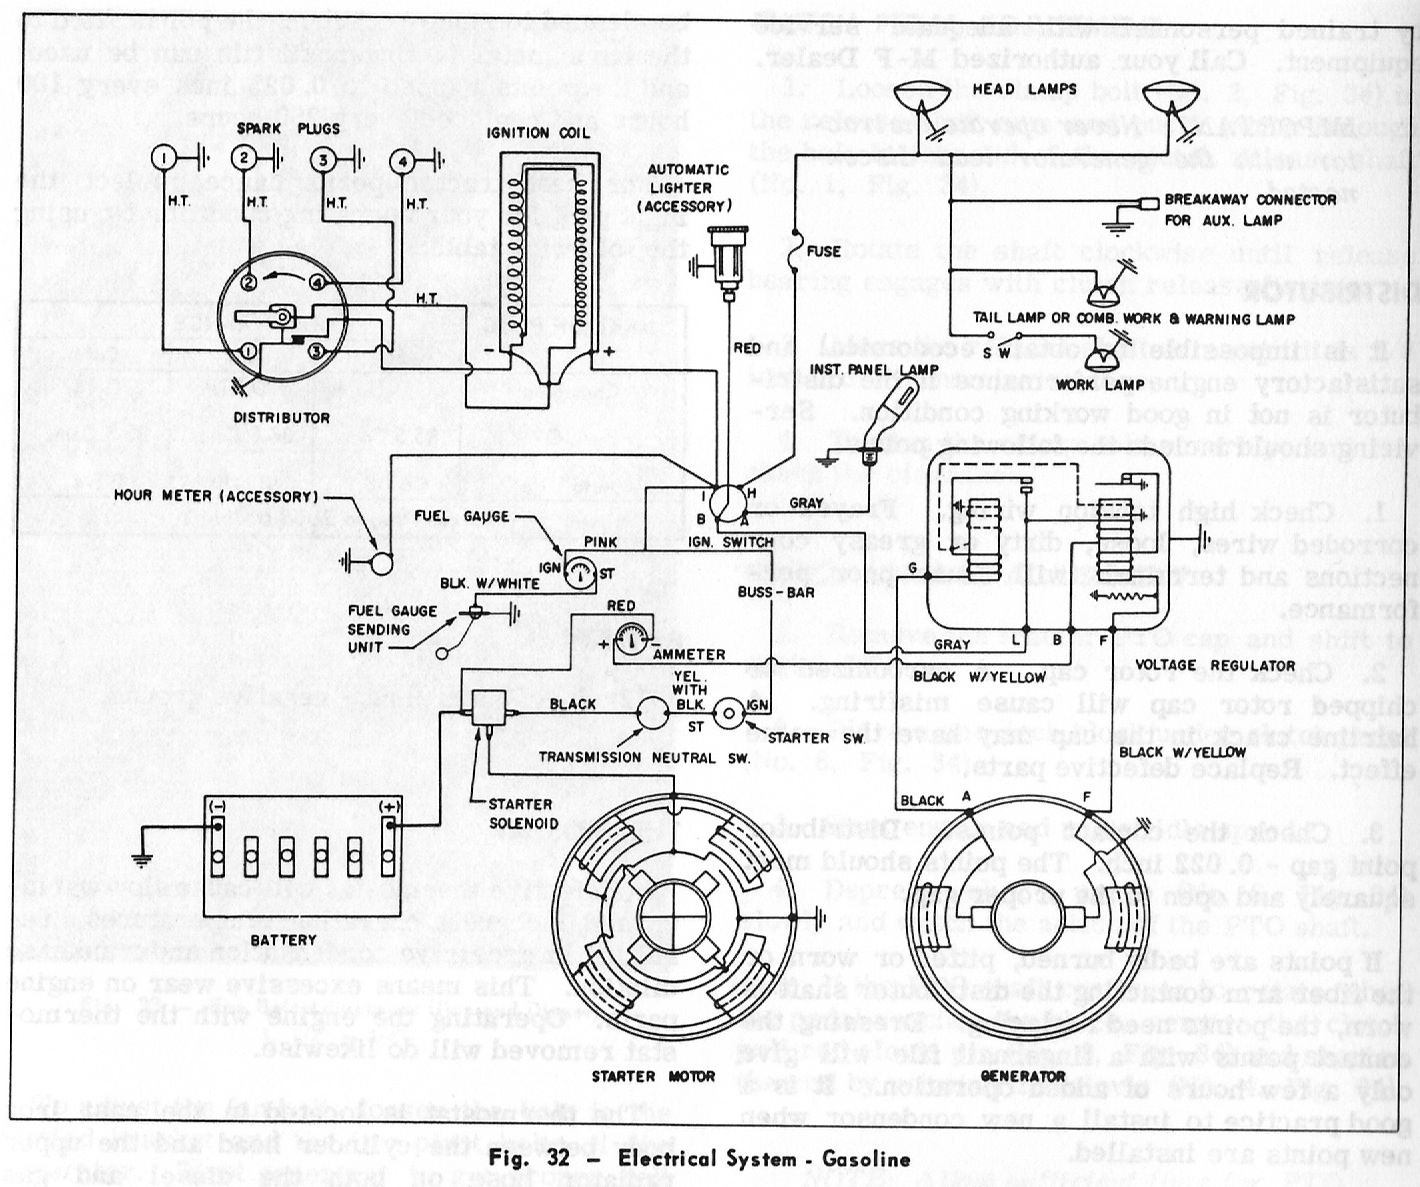 Massey Ferguson 65 Parts Diagram : Wiring diagram for massey ferguson the